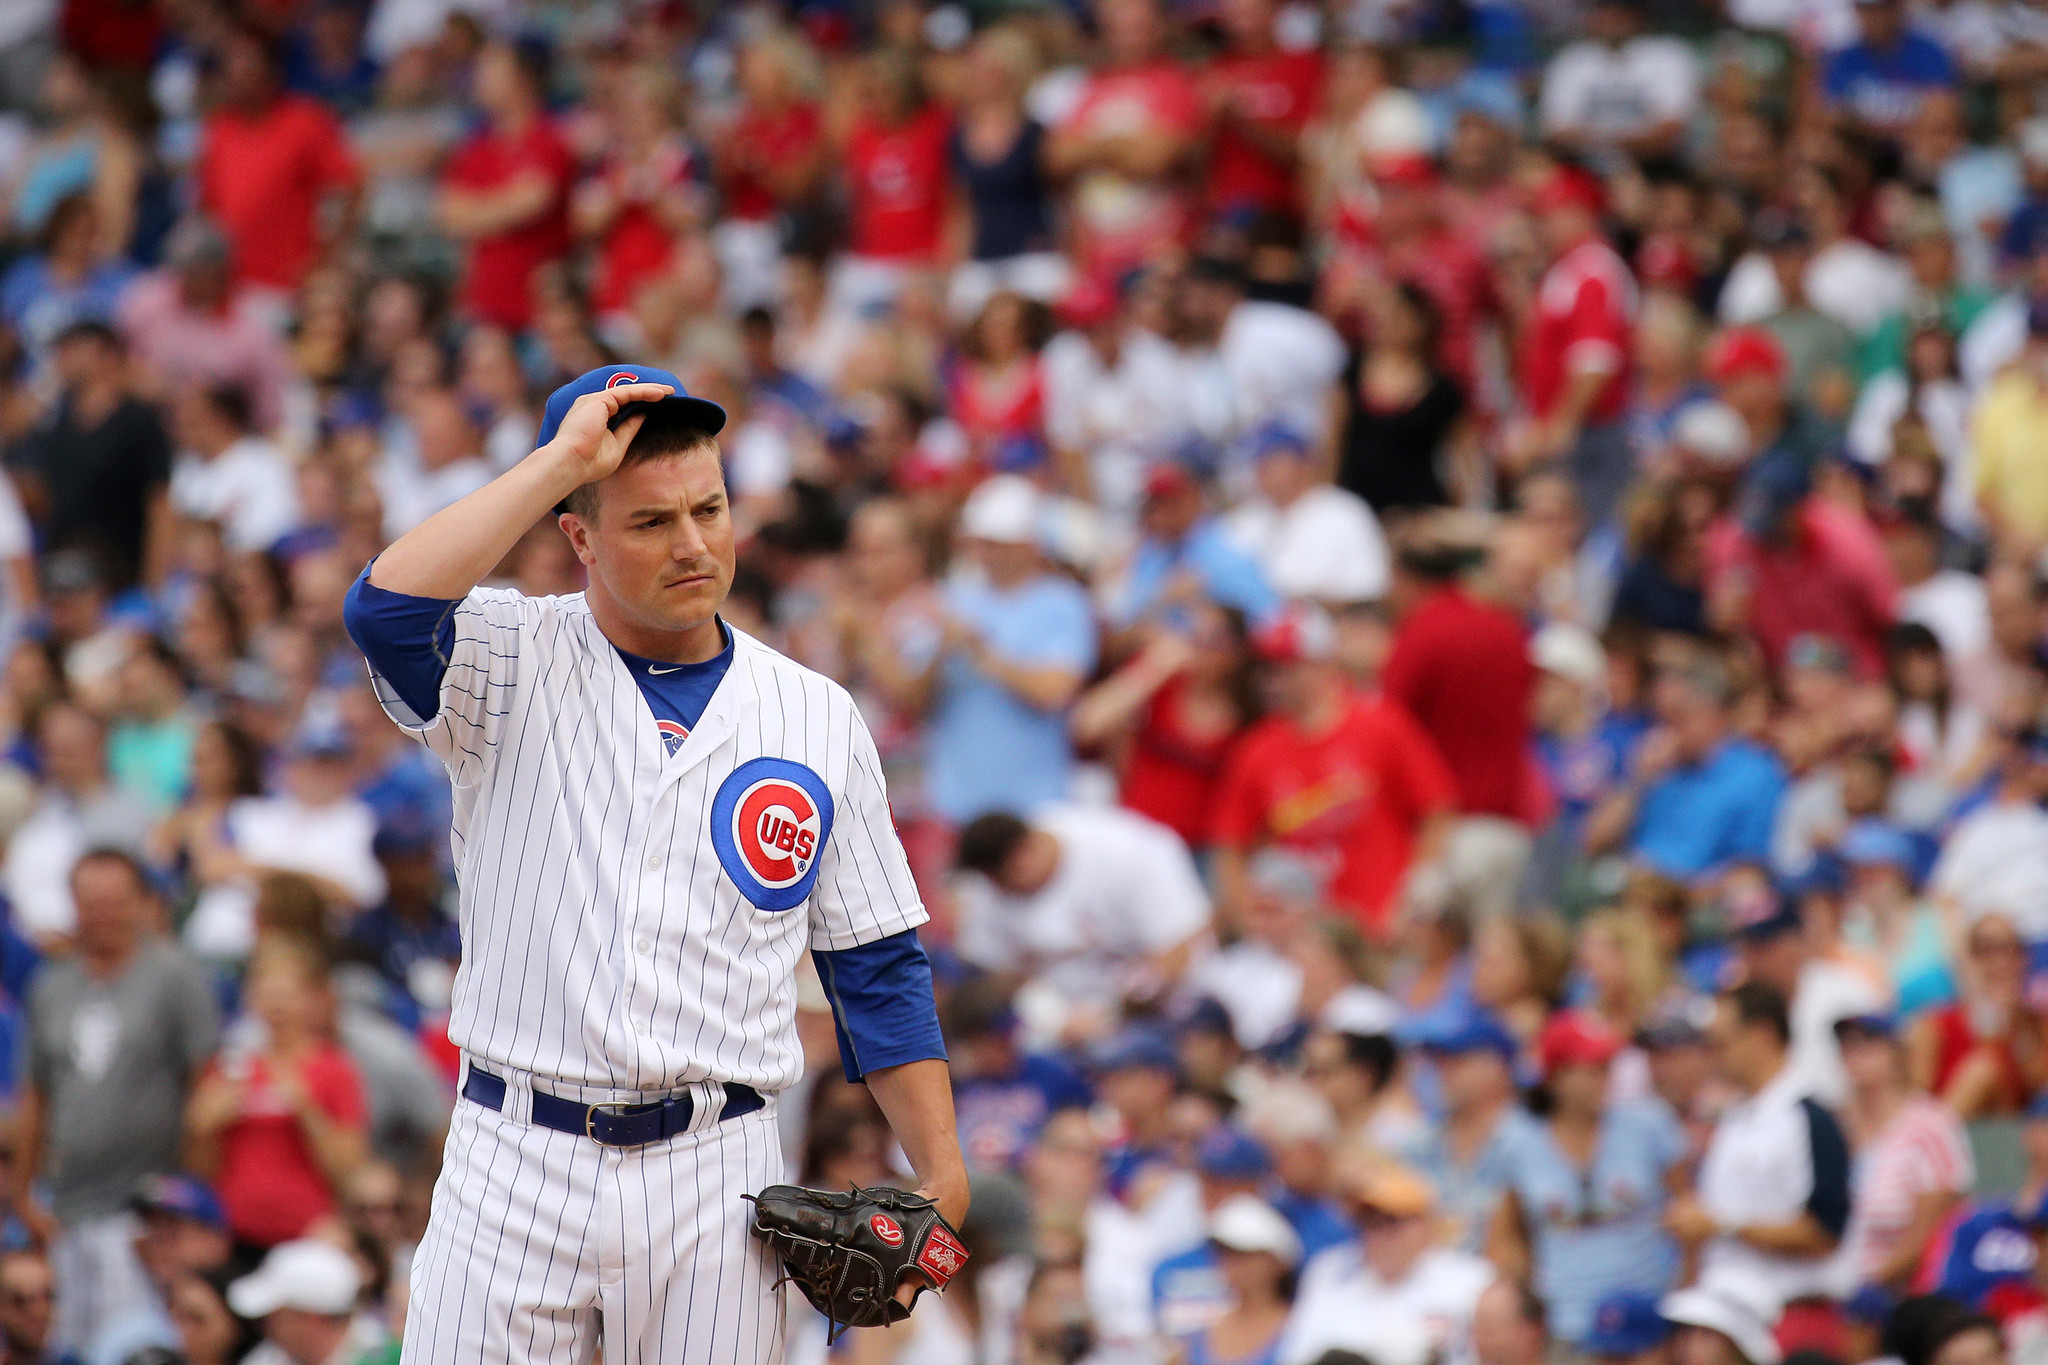 Grand slam accentuates reliever Joe Smith s rough start with Cubs